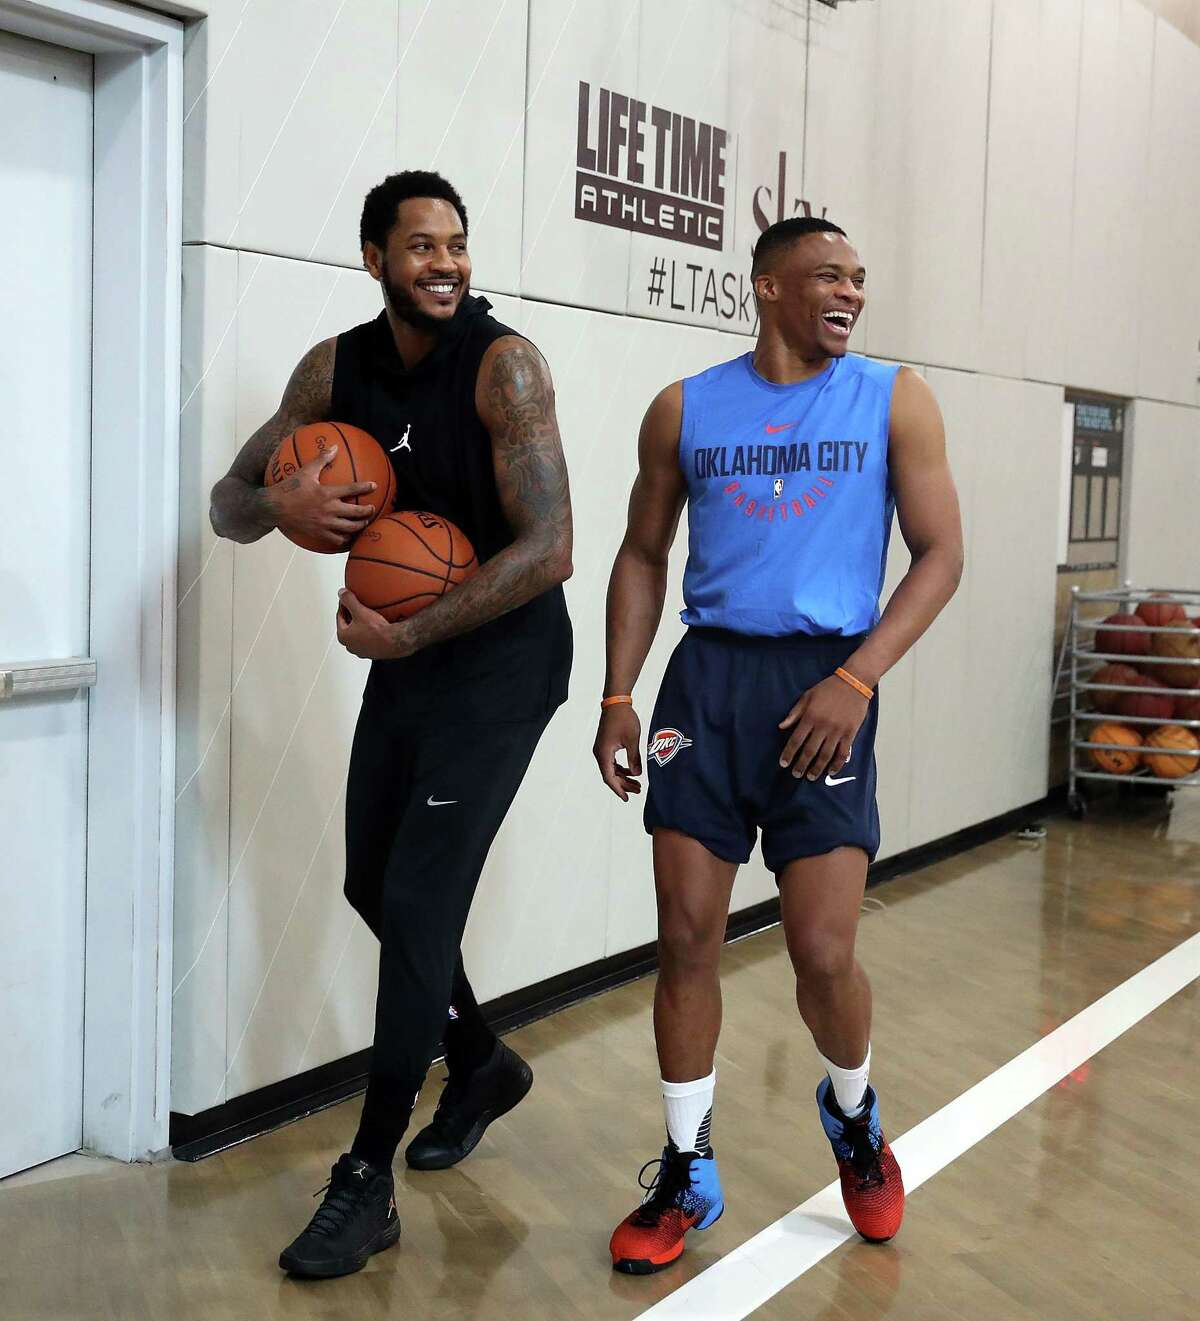 NEW YORK, NY - SEPTEMBER 11: Carmelo Anthony and Russell Westbrook attend Black Ops Basketball Session at Life Time Athletic At Sky on September 11, 2017 in New York City. (Photo by Shareif Ziyadat/Getty Images)